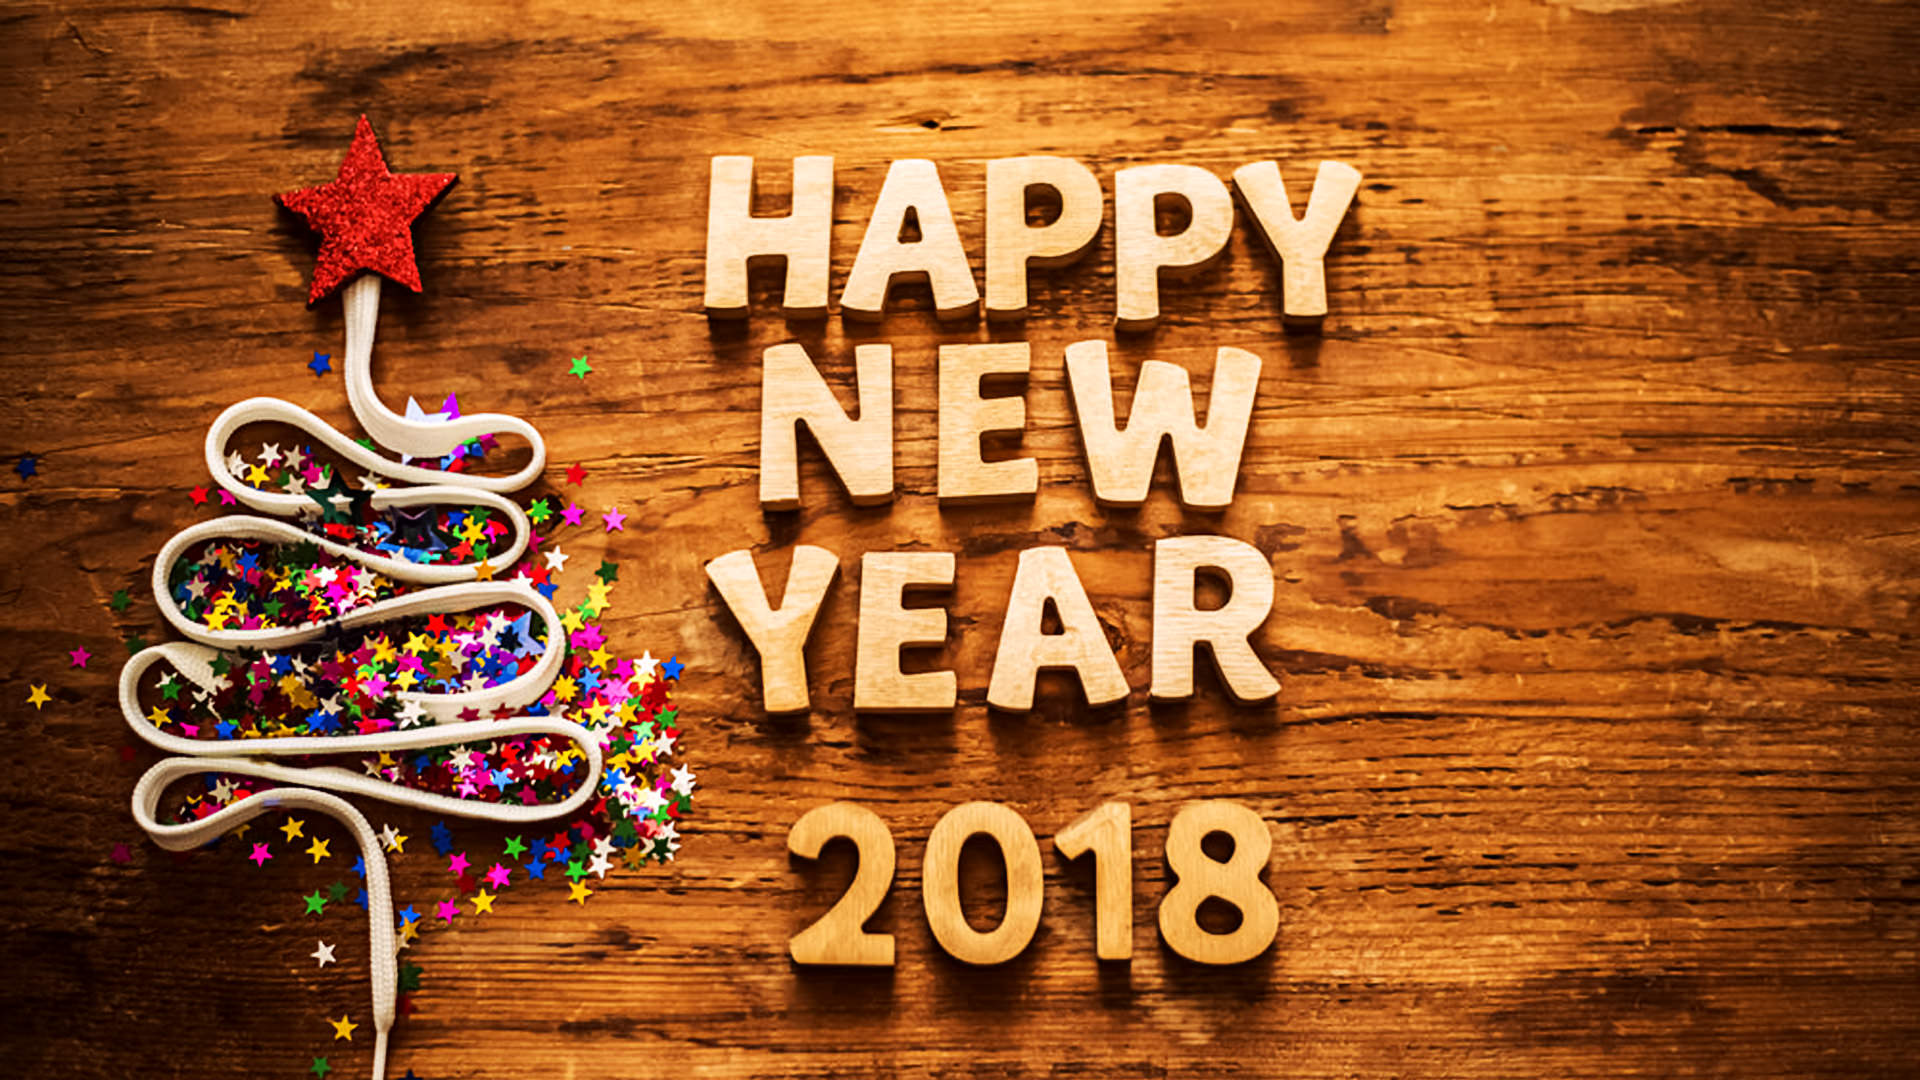 3D Happy New Year 2018 Wallpaper